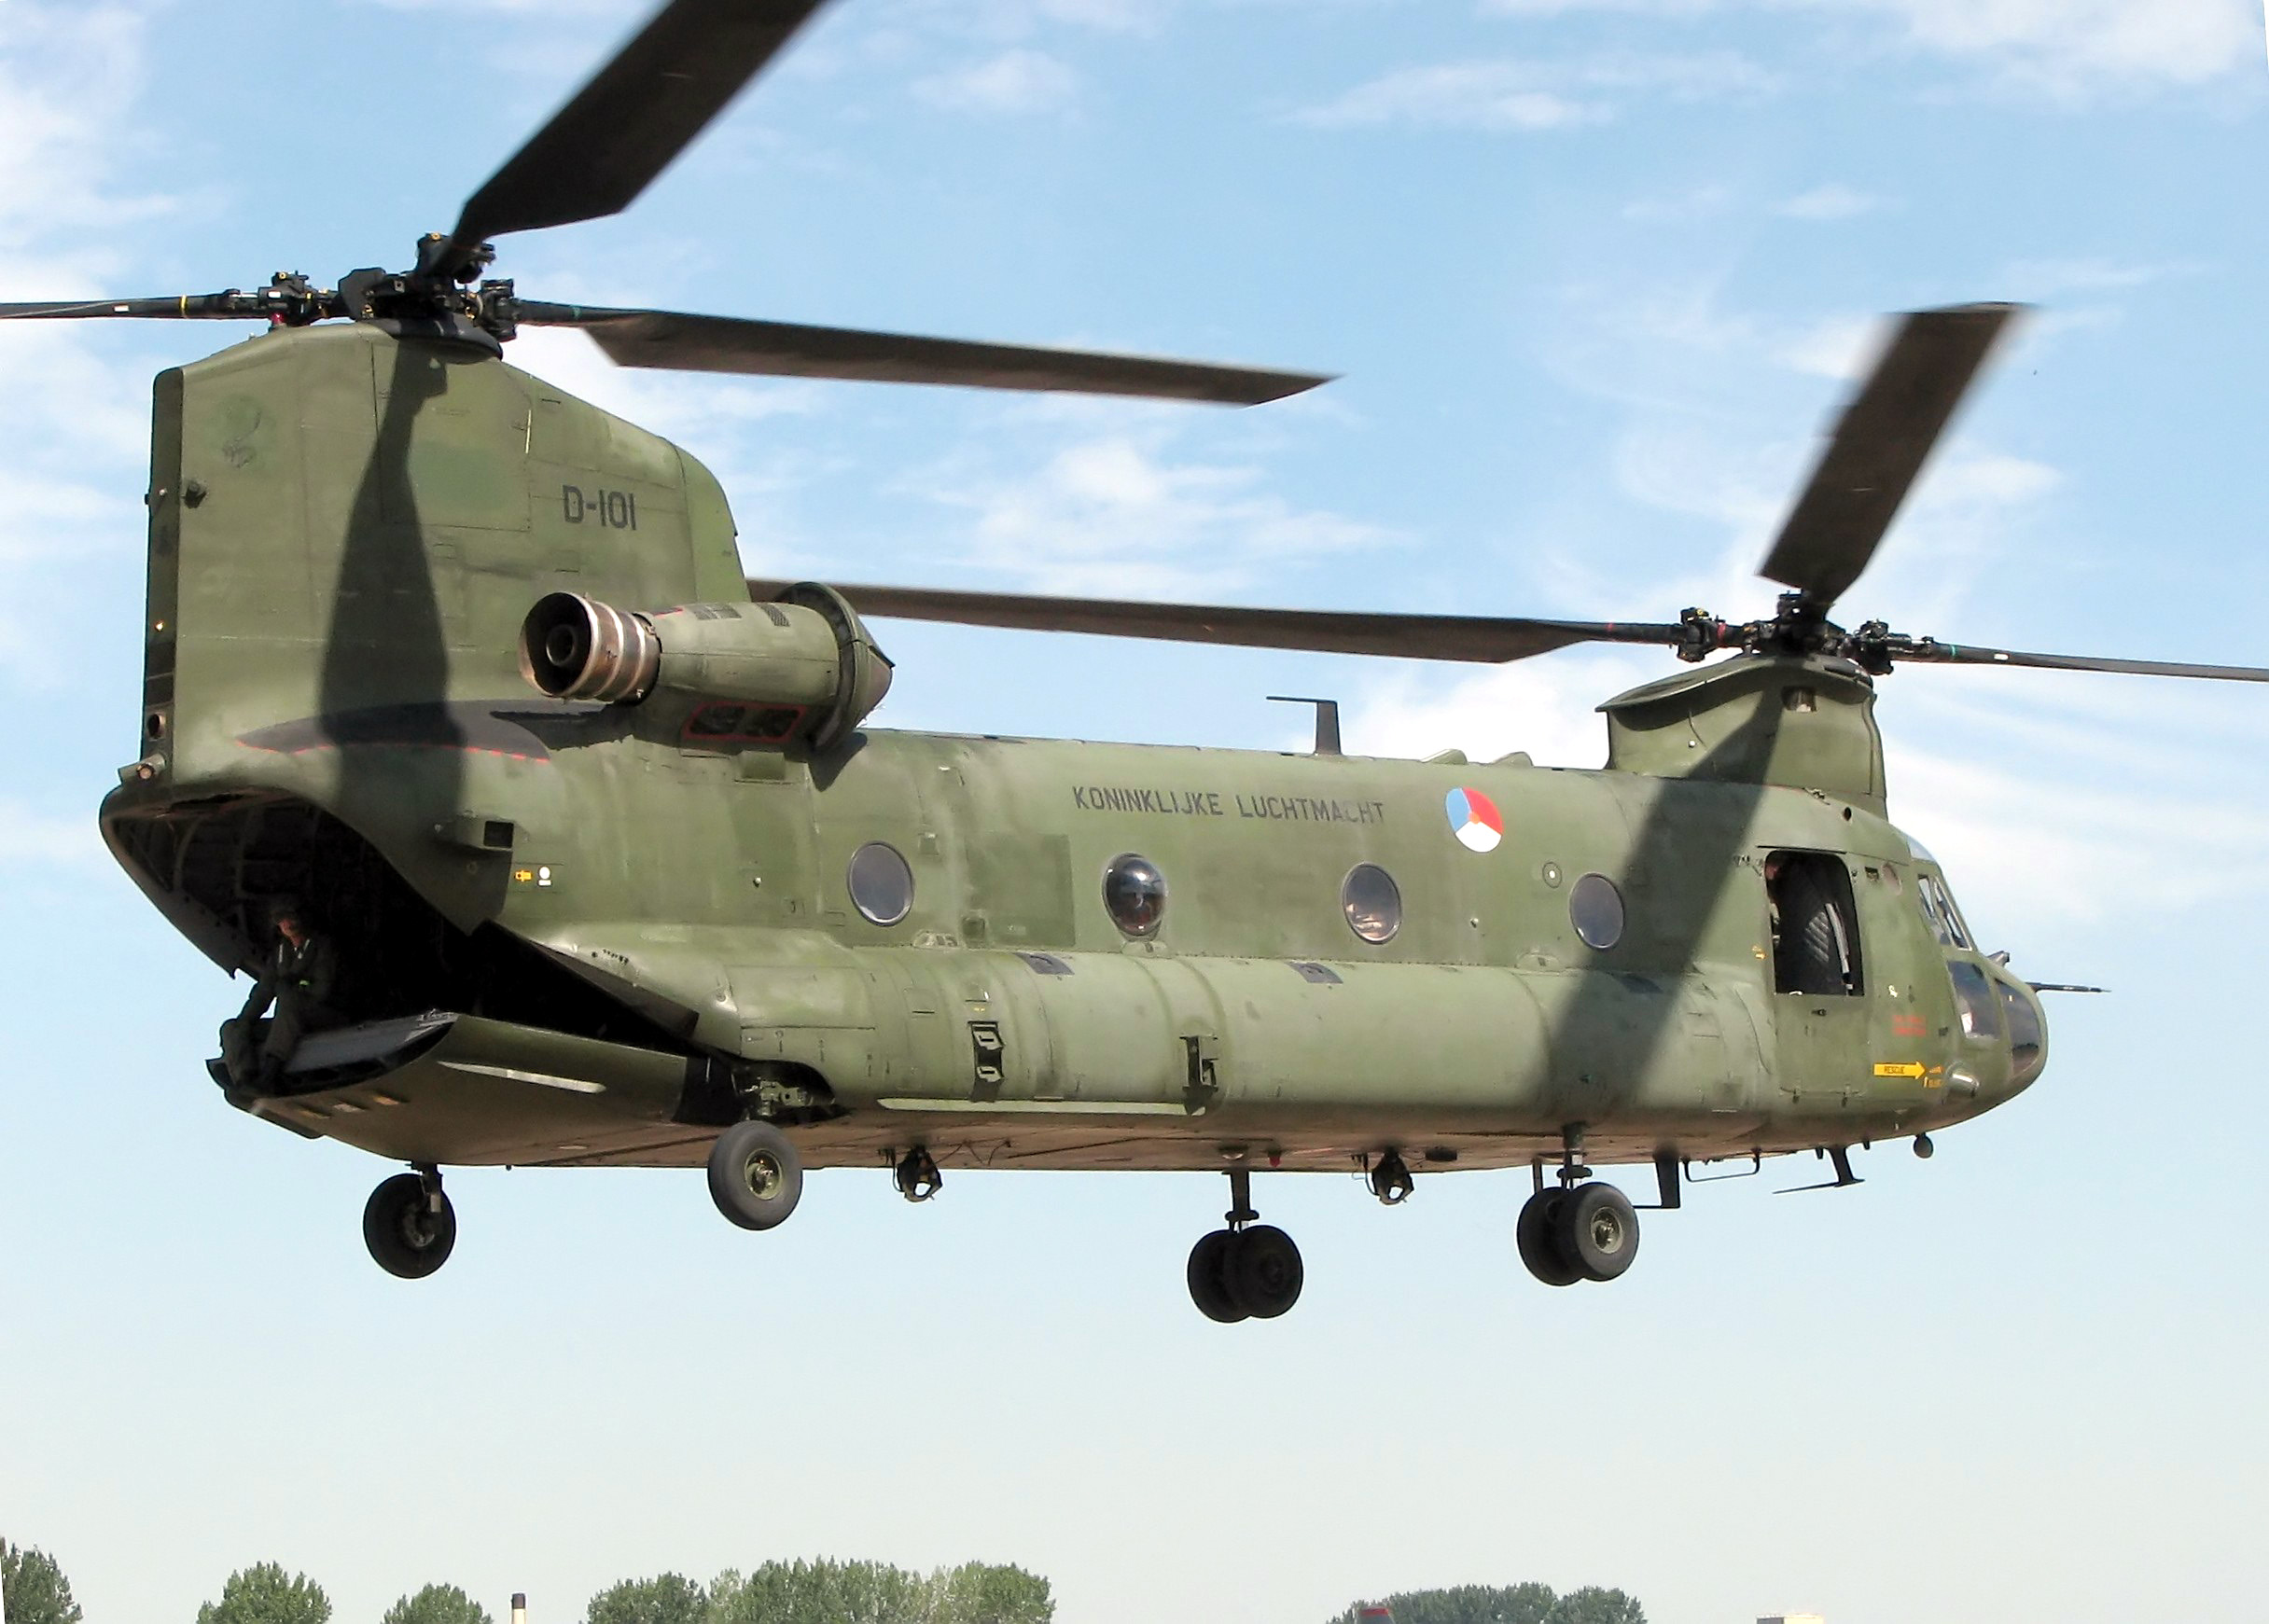 http://upload.wikimedia.org/wikipedia/commons/1/1a/Chinook.ch-47d.d-101.rnethaf.arp.jpg